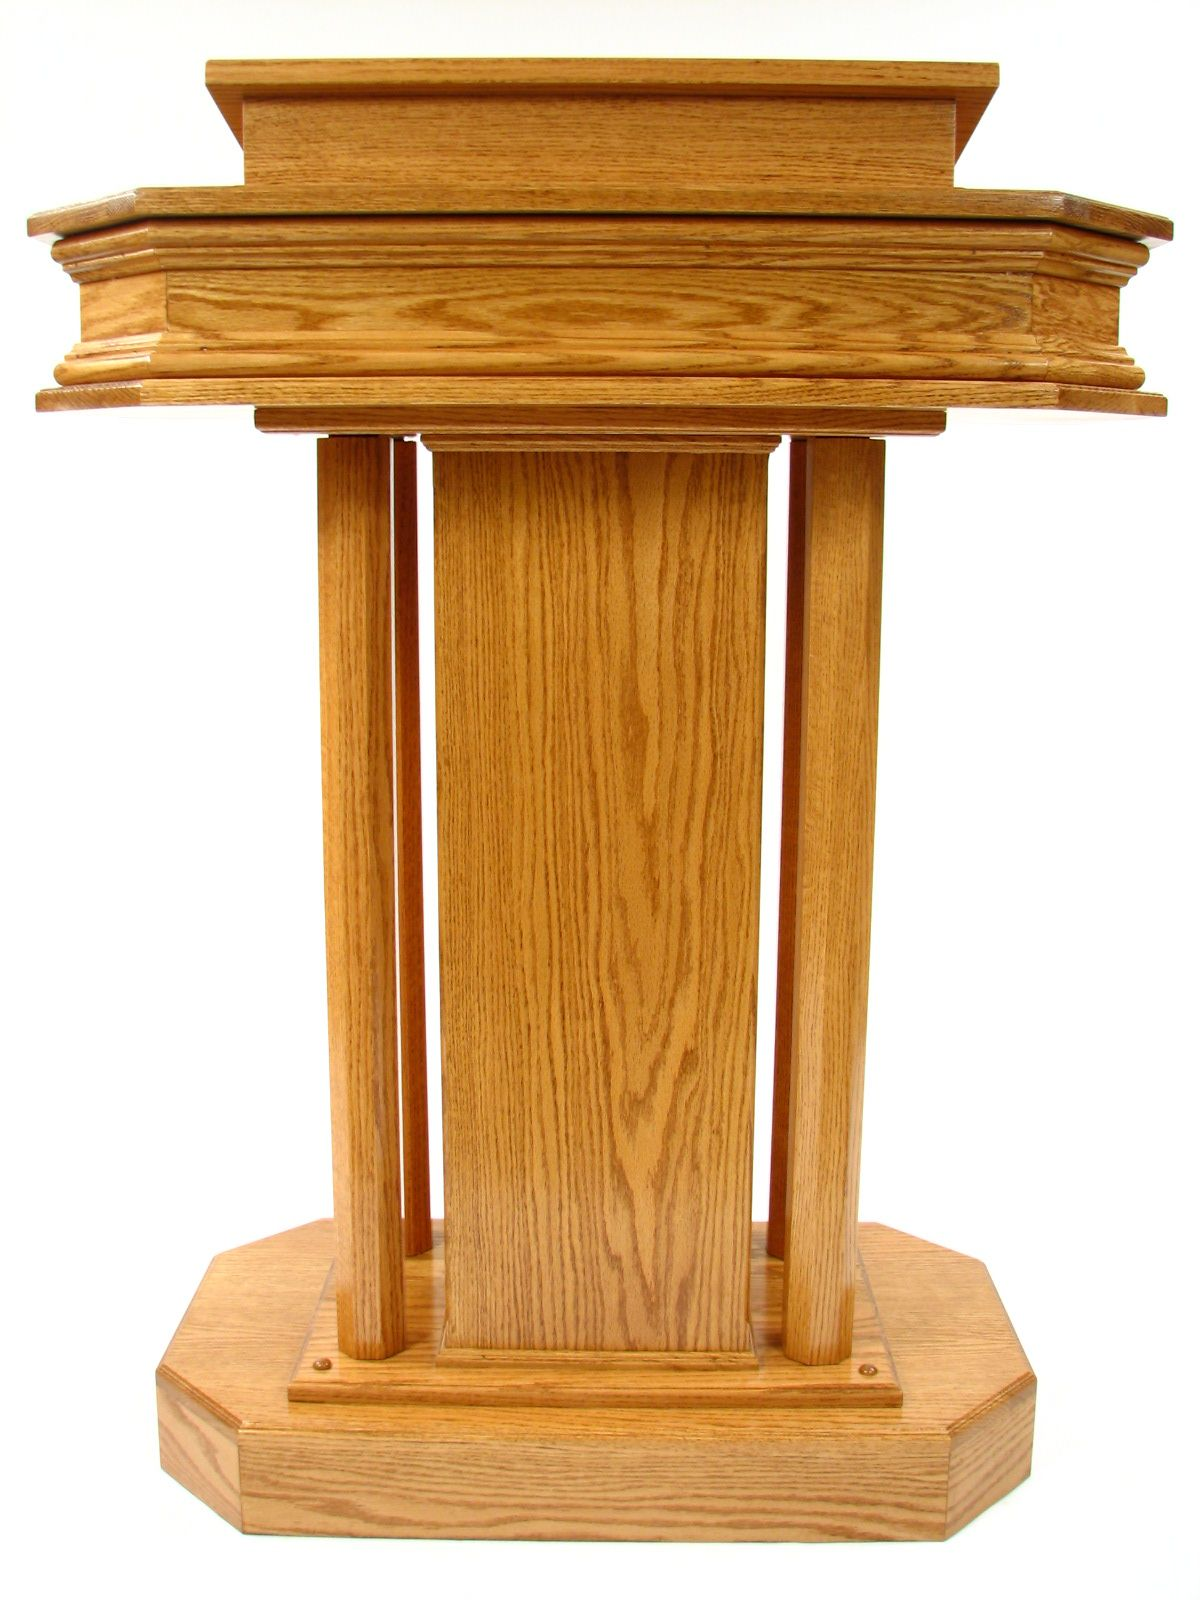 Wood Pulpit Church pulpit plans - Front   Podiums & Pulpits   Pinterest   Wood, Furniture and ...